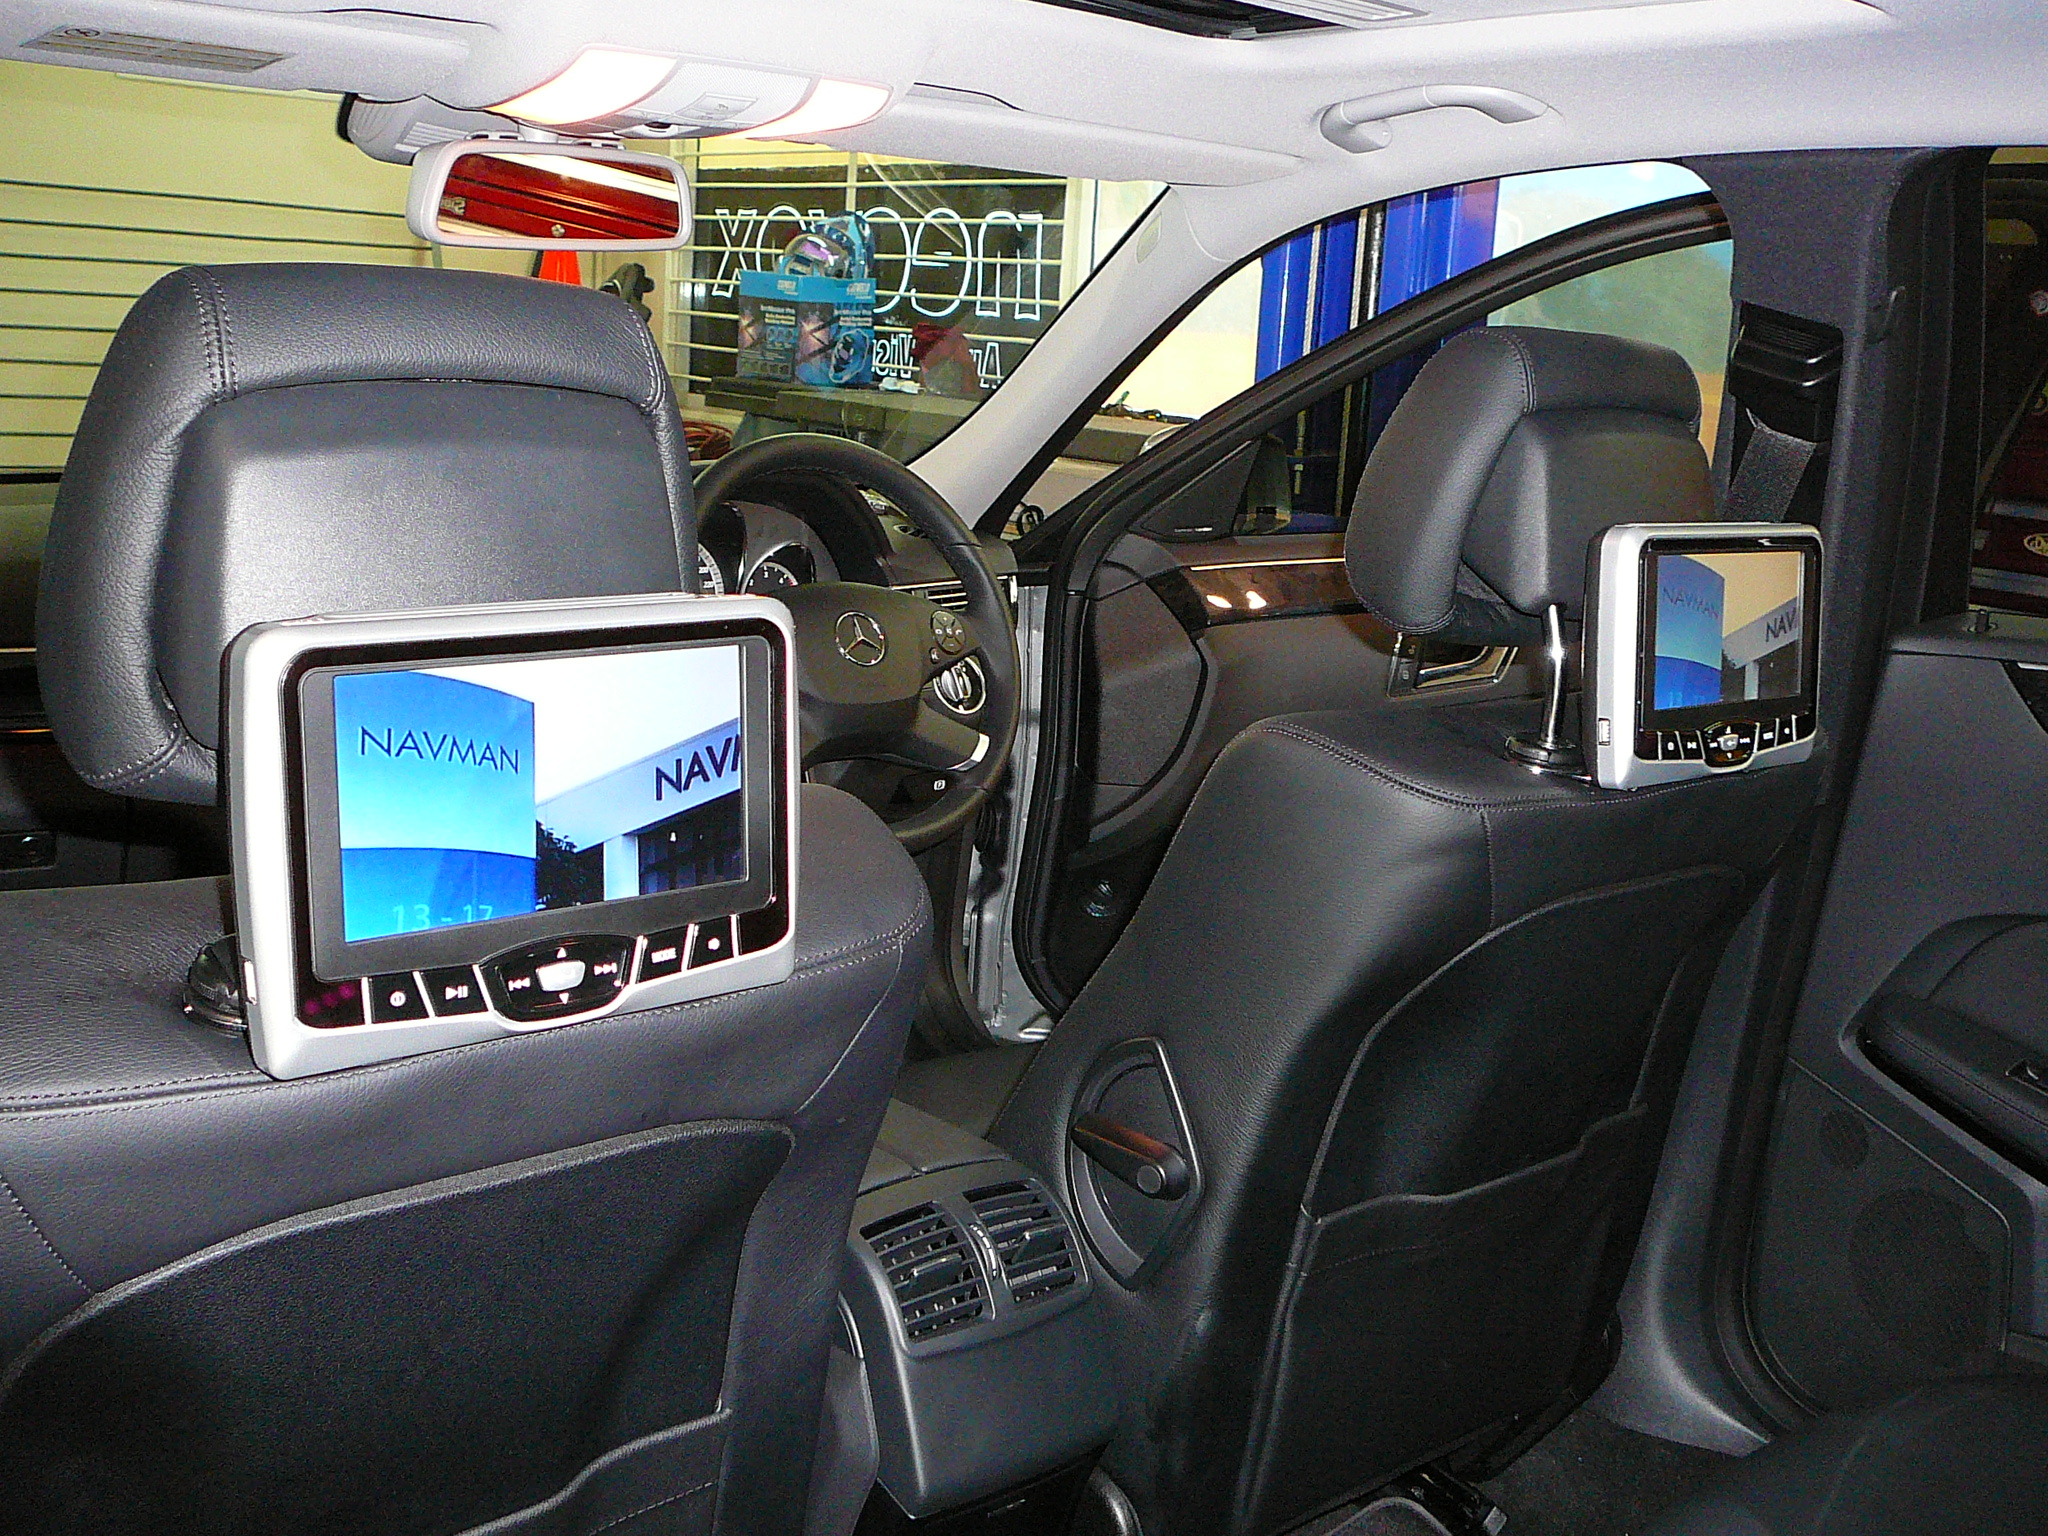 Rosen AV-7700 made to suit Mercedes Benz Active Style Head Rests.